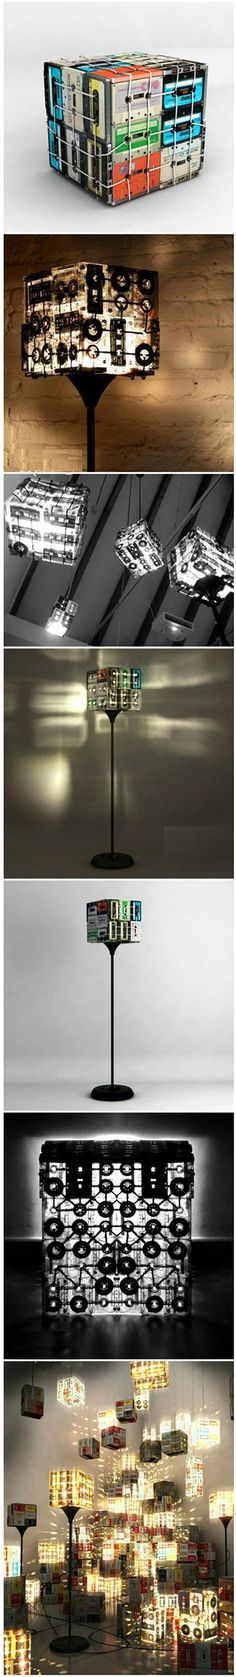 Homemade lamps from music cassettes- Selbstgemacht Lampen aus Musikkassetten Homemade lamps from music cassettes - Craft Tutorials, Diy Projects, Craft Ideas, Diy Ideas, Lampe Retro, Ideias Diy, Diy Recycle, Diy Furniture, Diy And Crafts